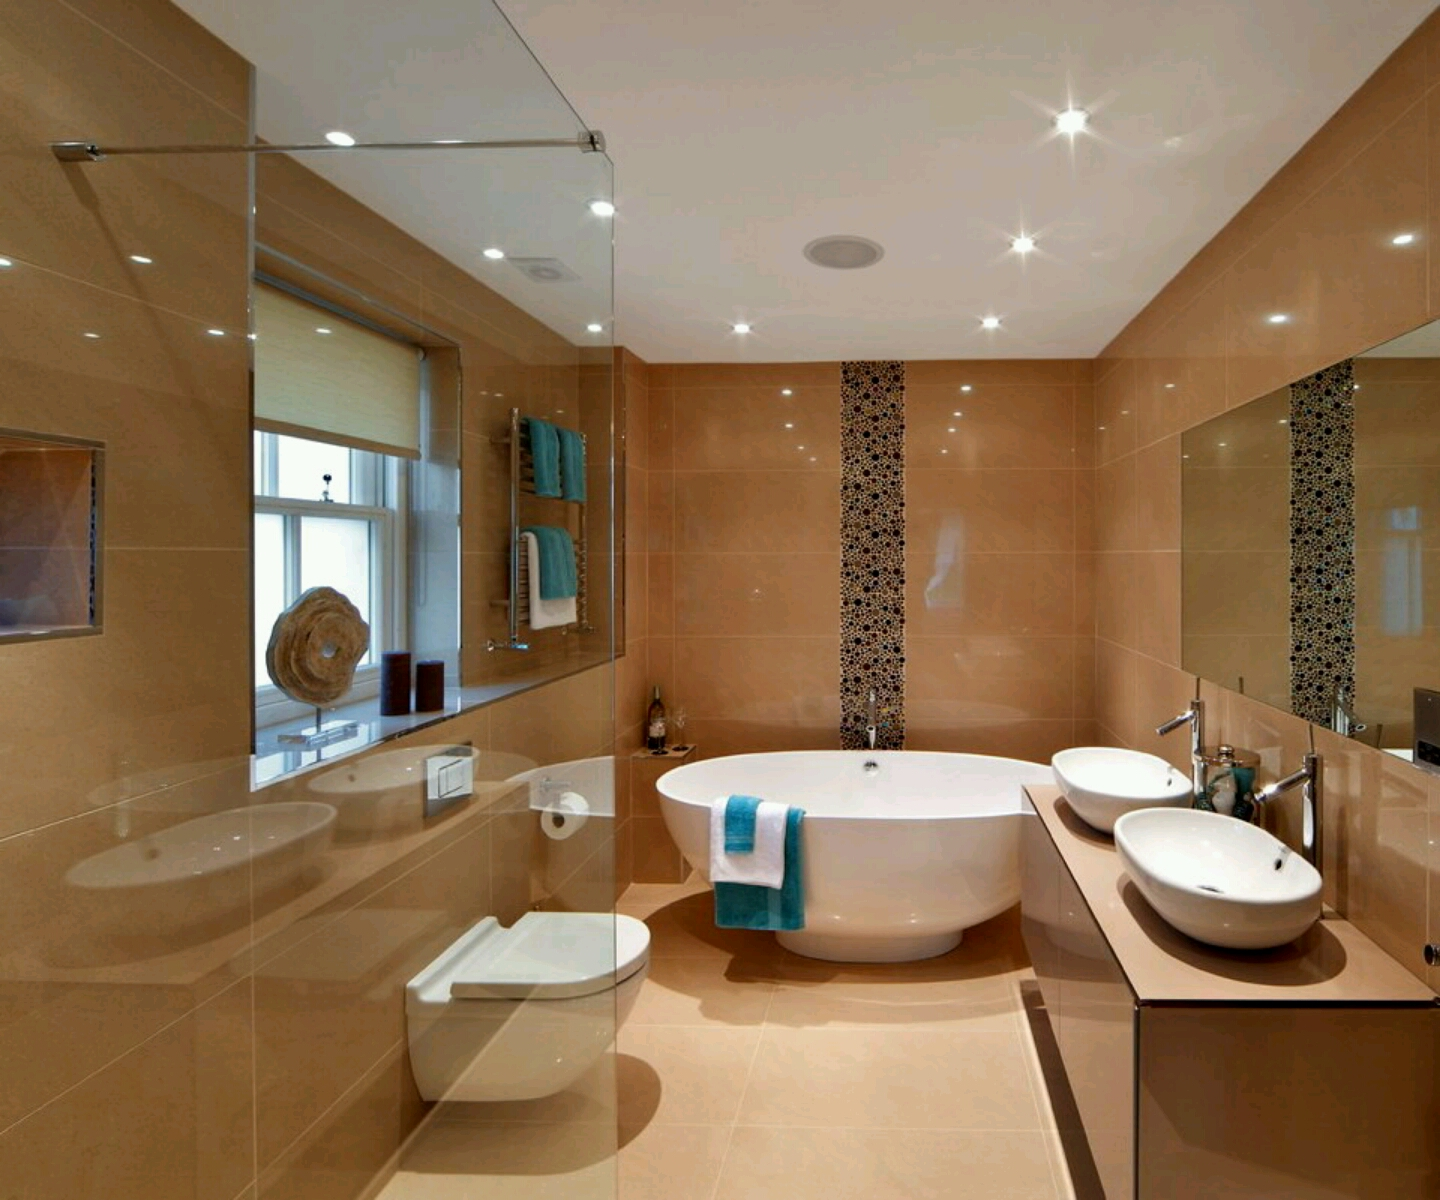 New home designs latest luxury modern bathrooms designs for Small modern bathroom designs 2012